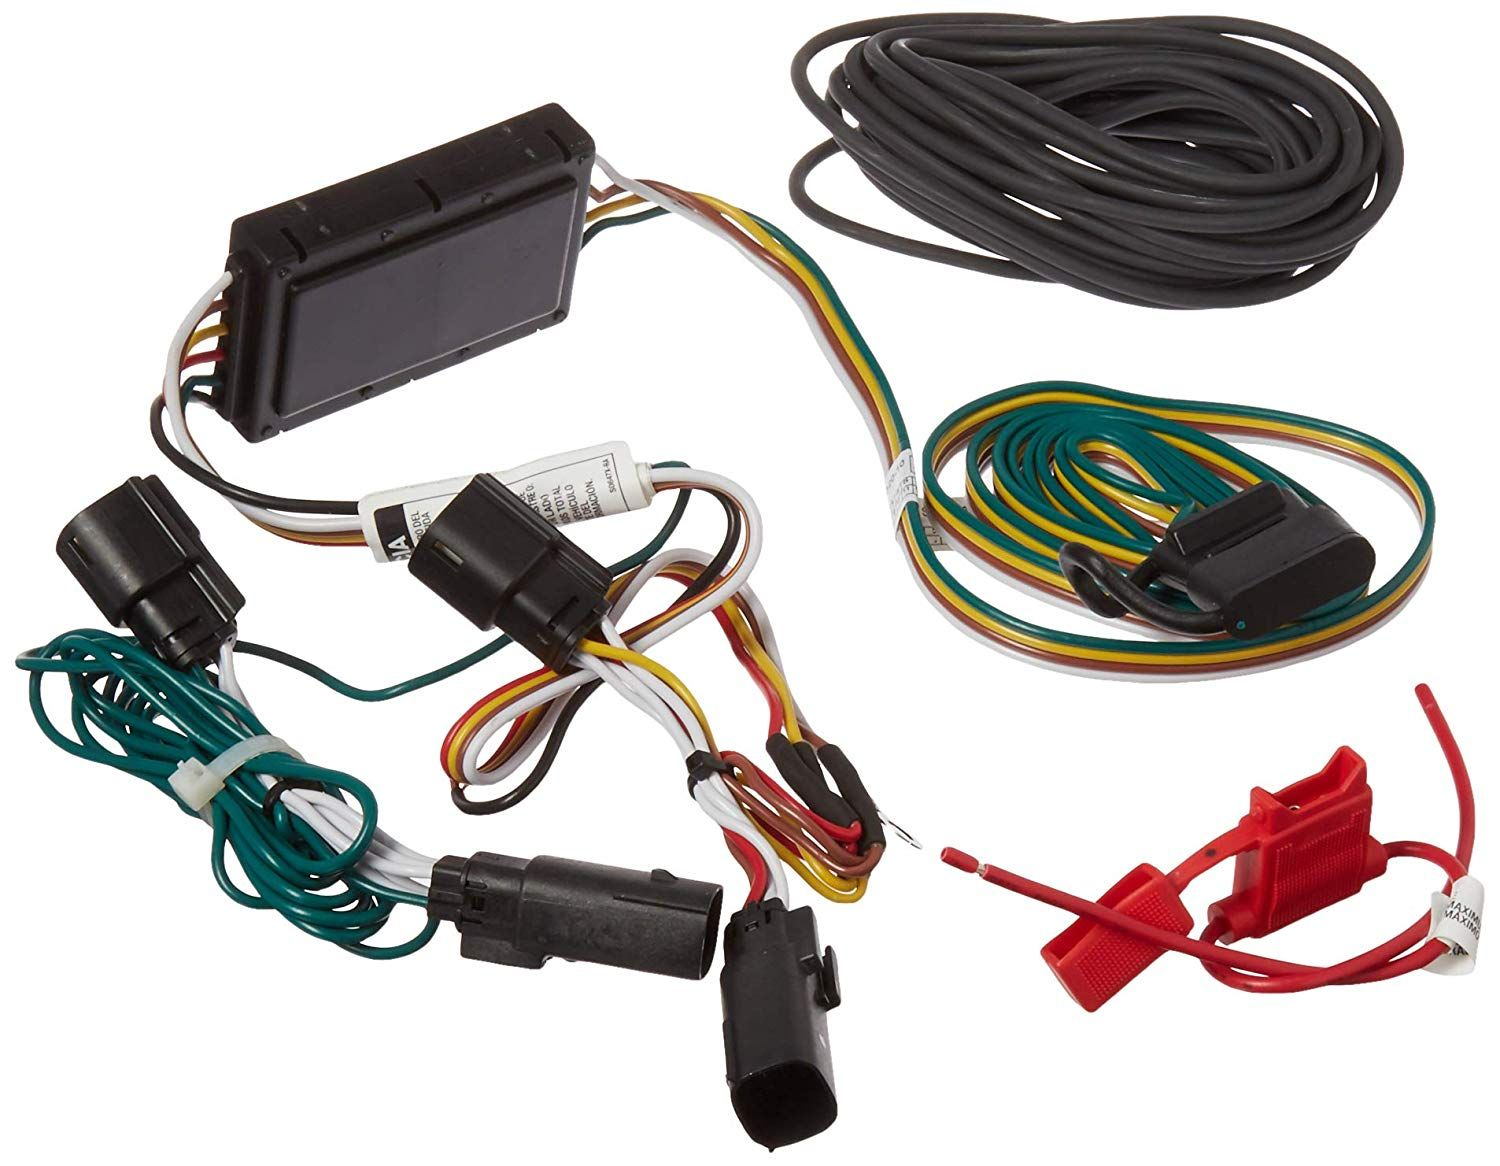 medium resolution of curt manufacturing 56320 custom trailer wiring harness provides a 4 way flat connector for